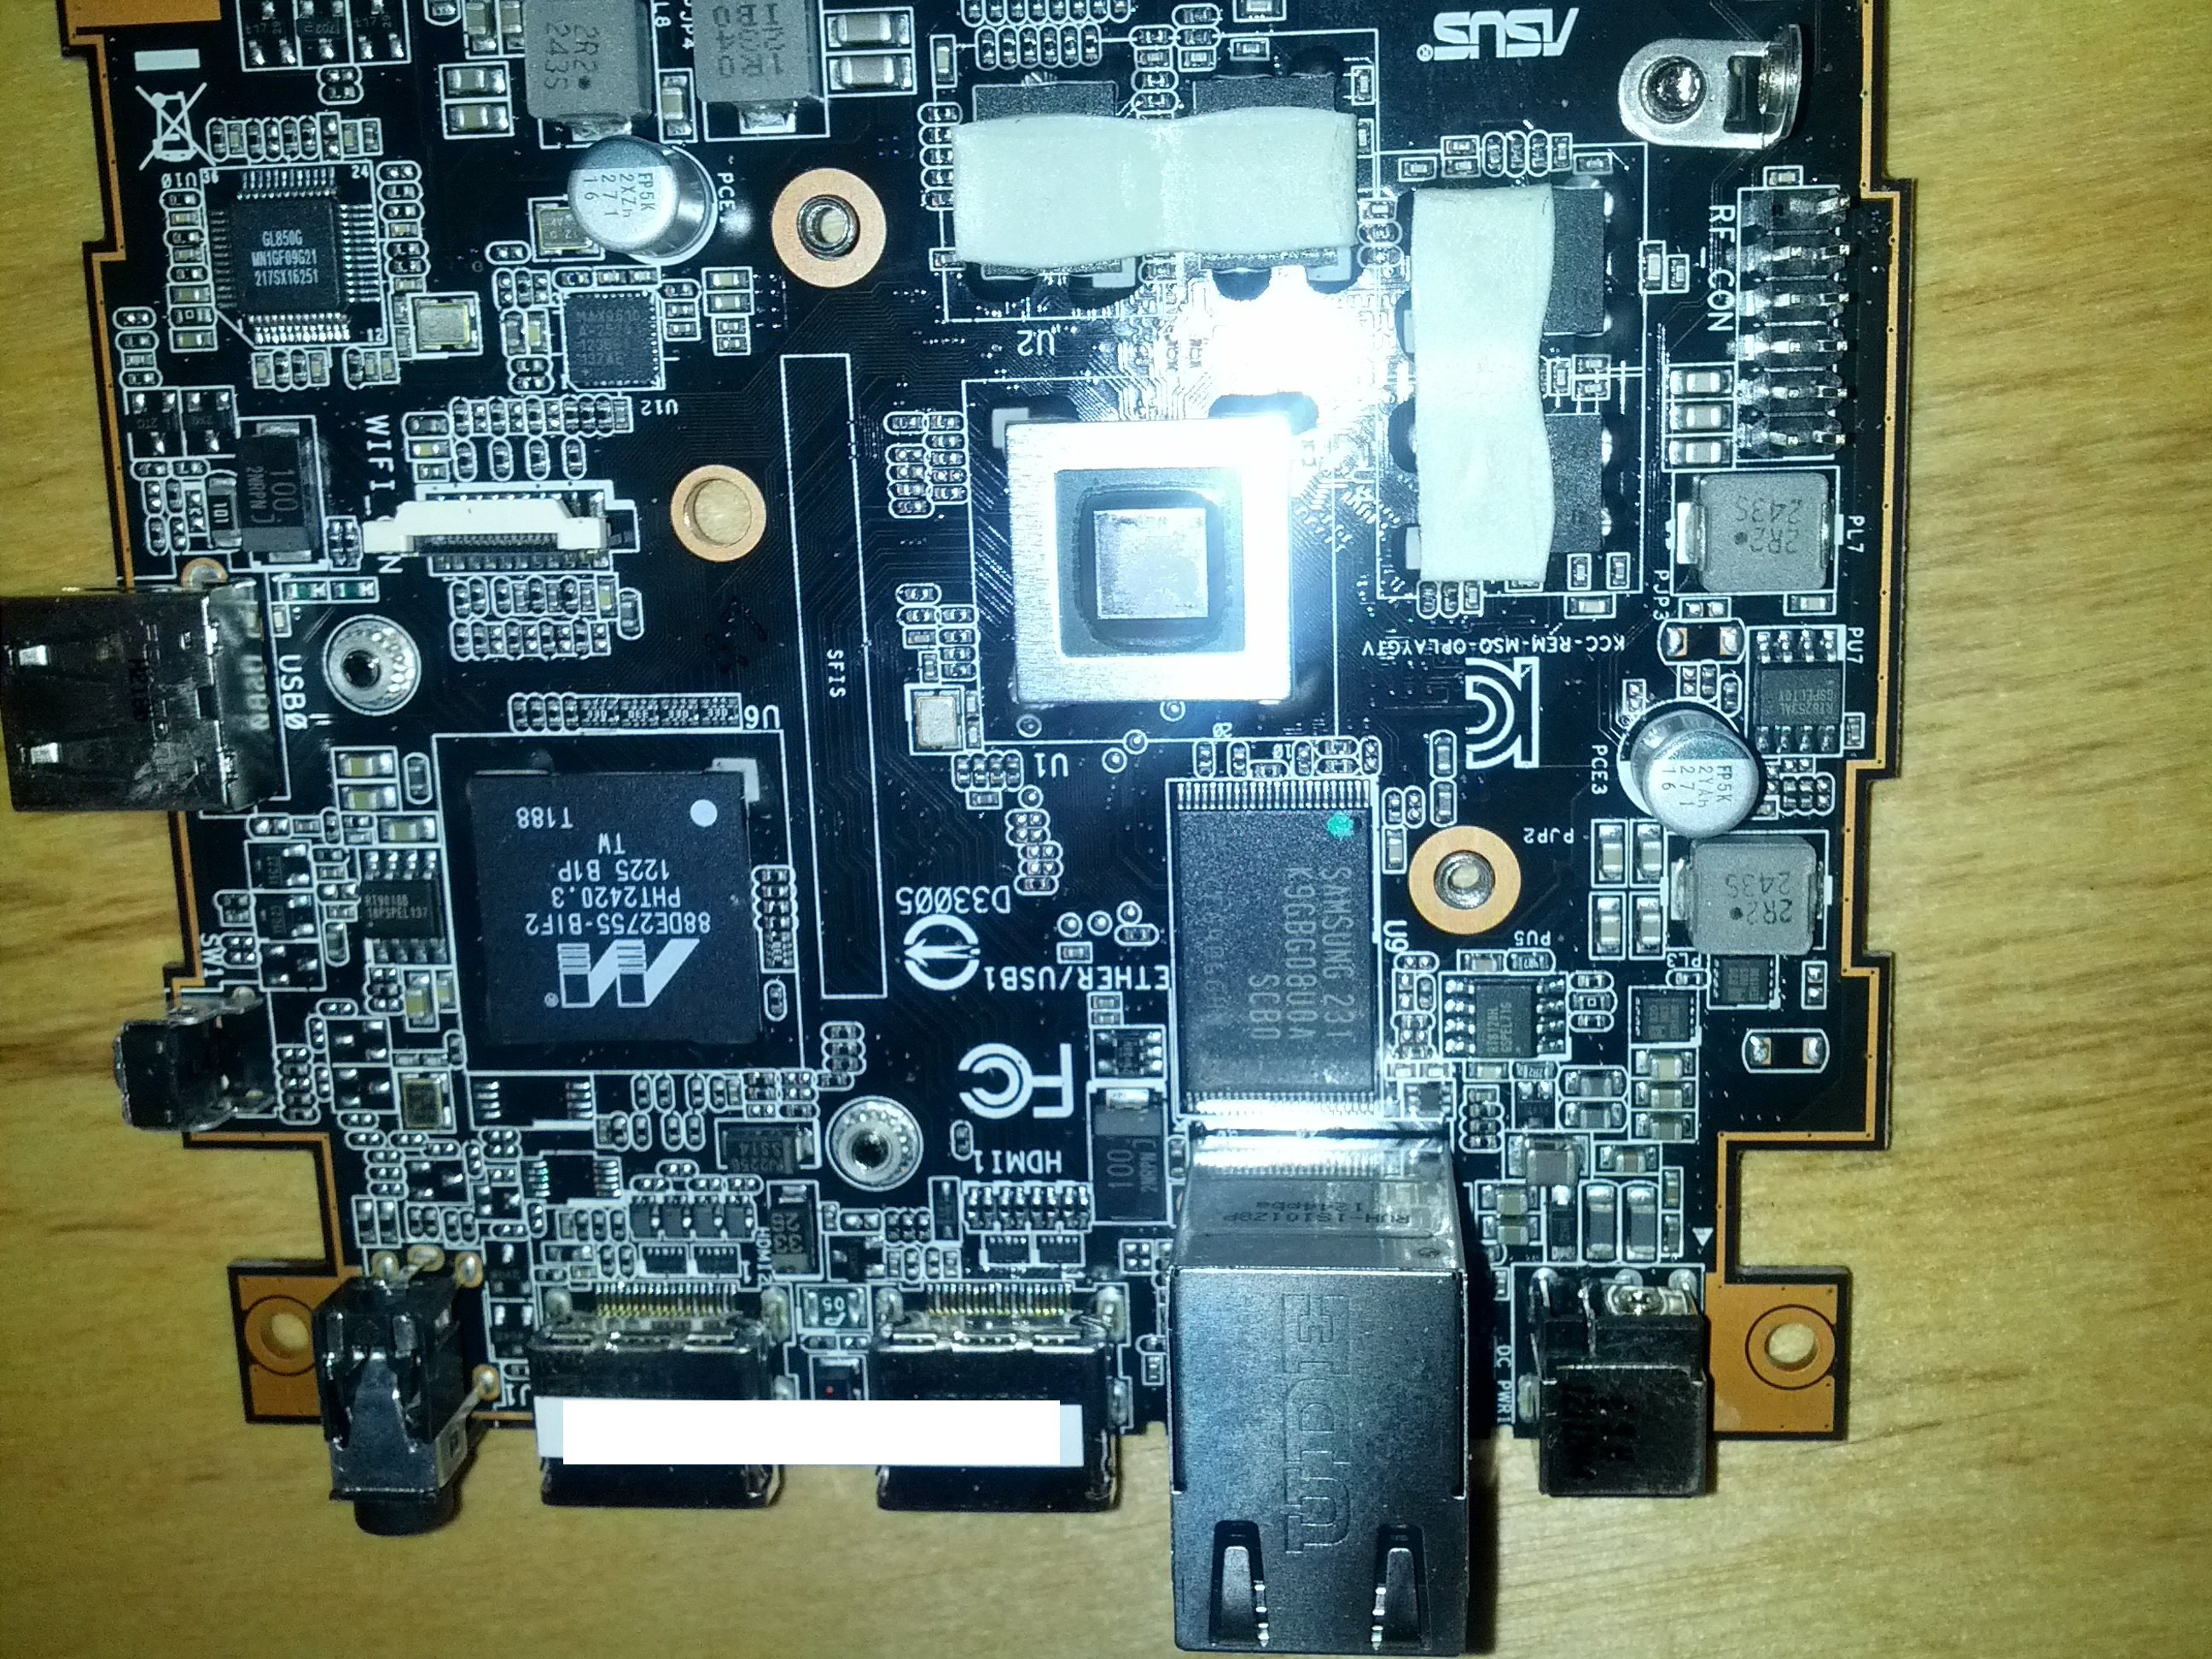 Asus cube teardown16.jpg